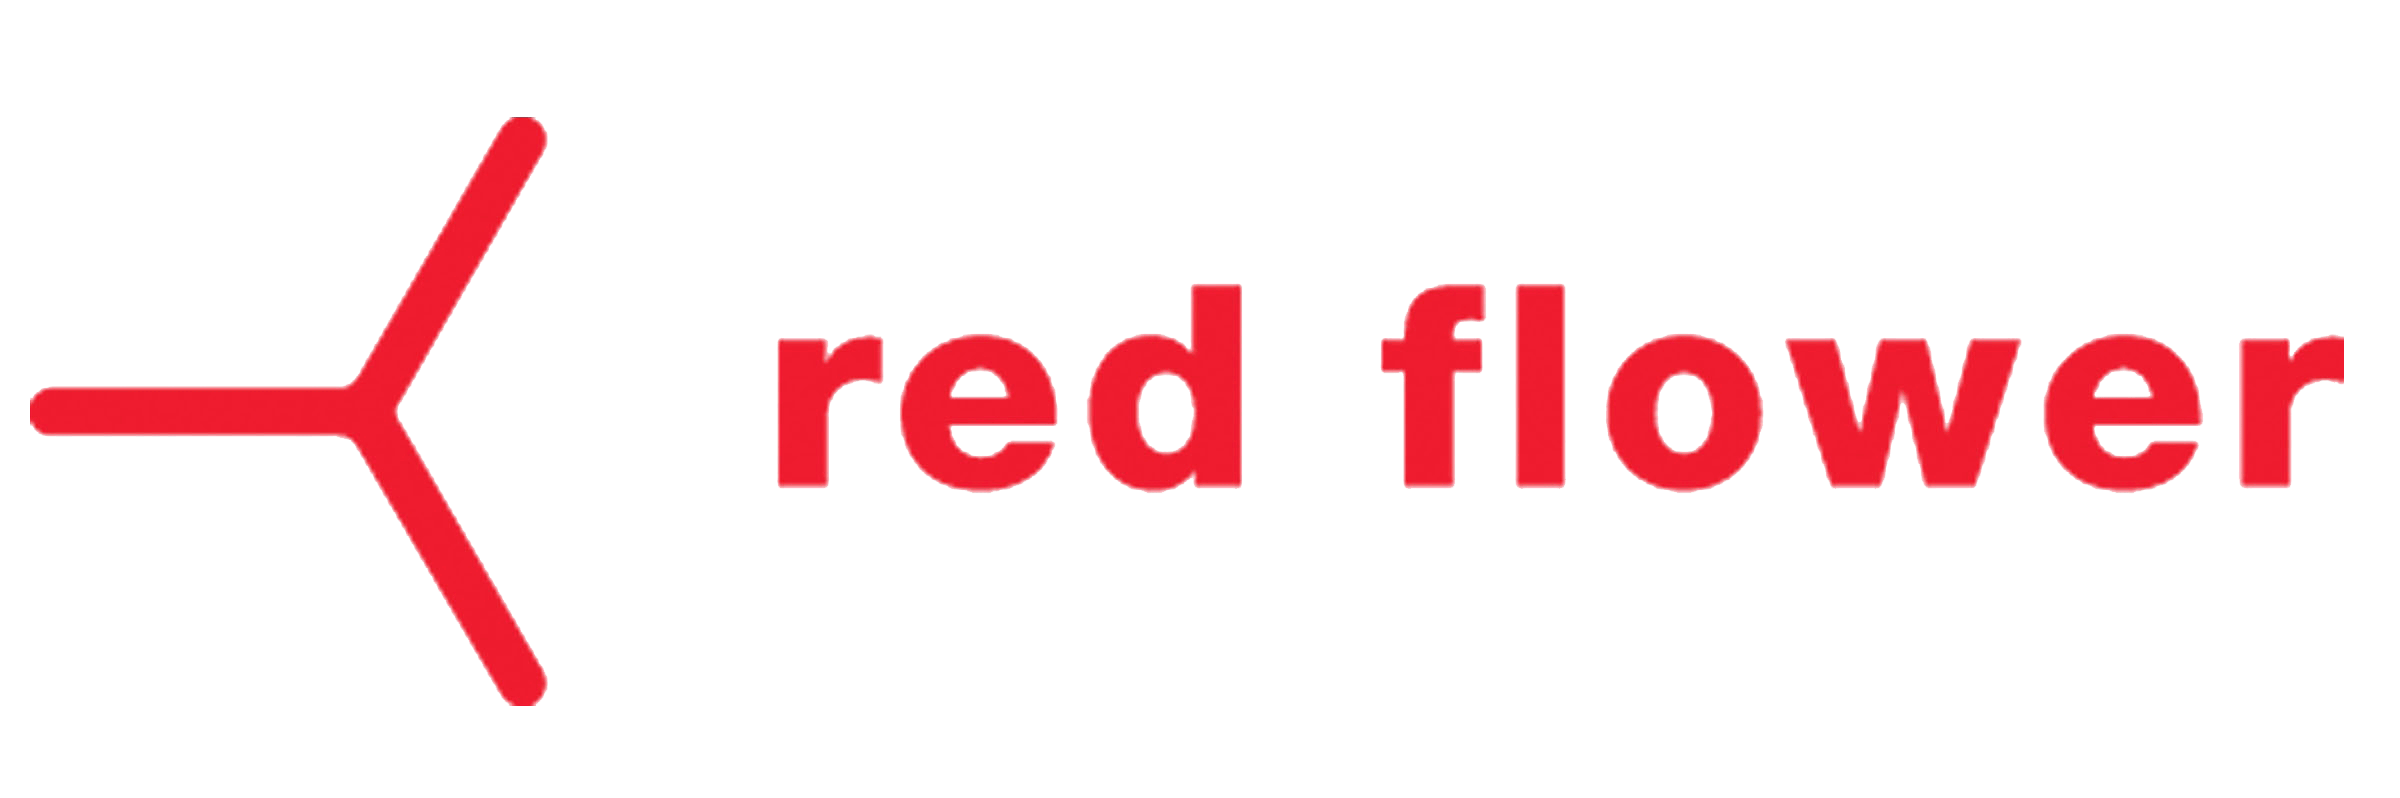 Red-flower-logo-28129.png